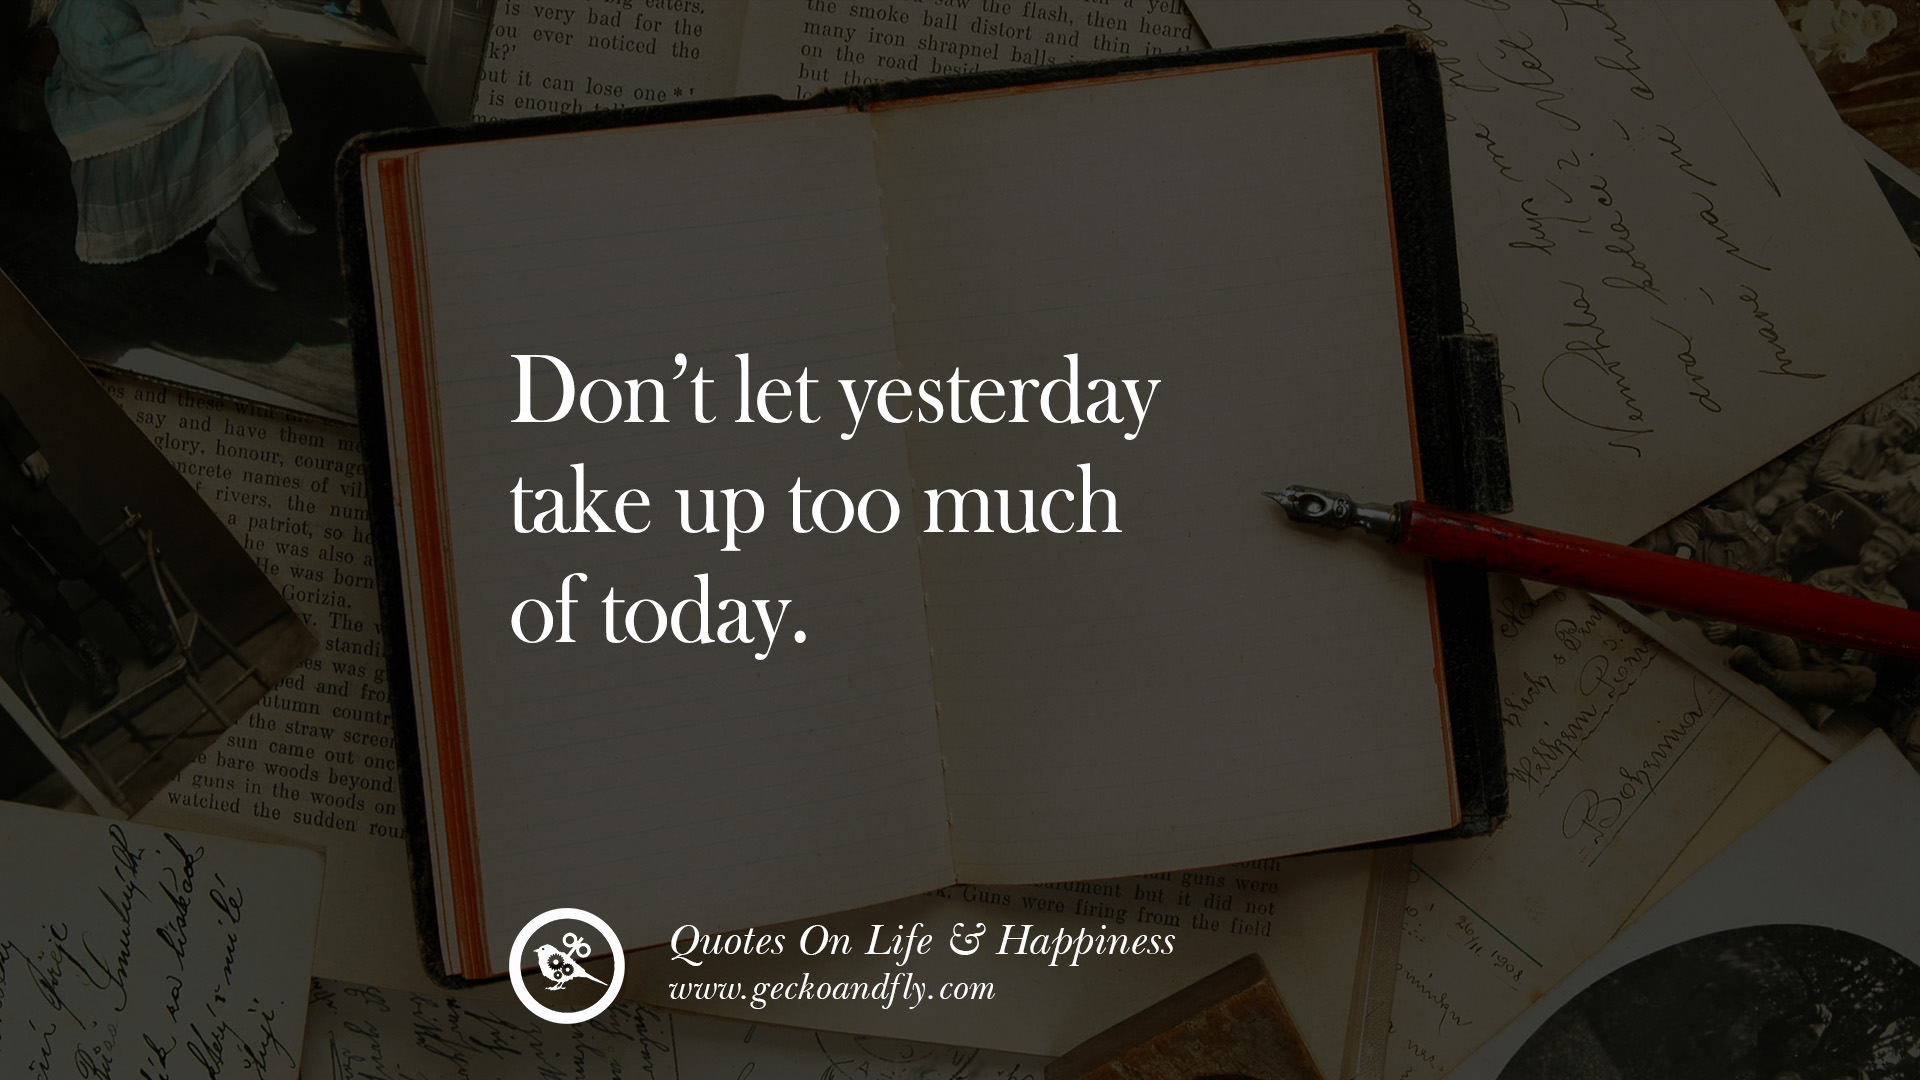 Donu0027t Let Yesterday Take Up Too Much Of Today. Happy Life Quote Instagram